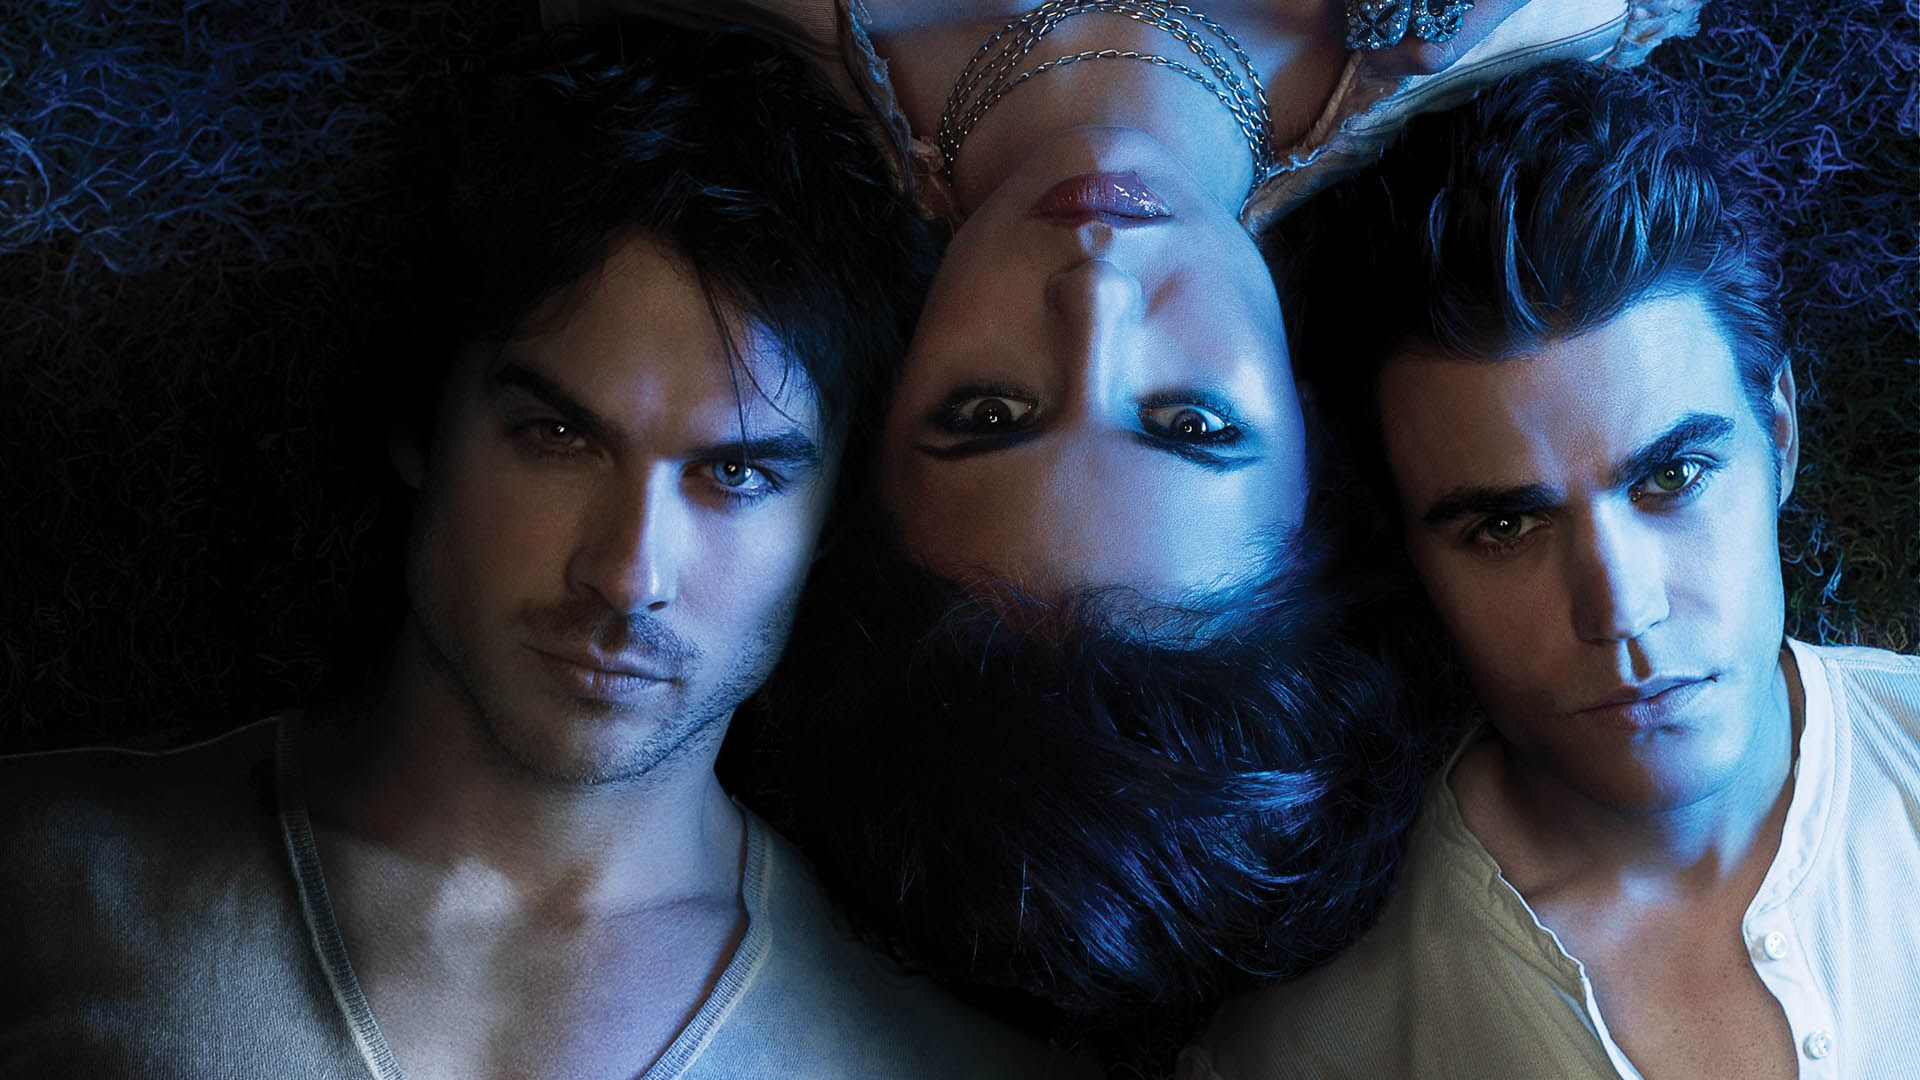 The Vampire Diaries HD Wallpaper - Wallpaper, High Definition ...